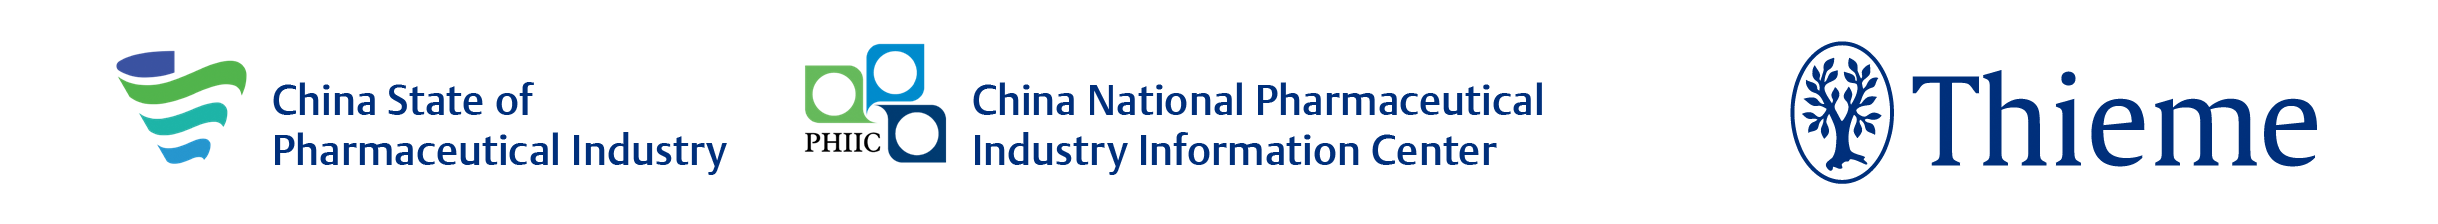 PhF_Pharmaceutical_Fronts_TPC_k4-1.png